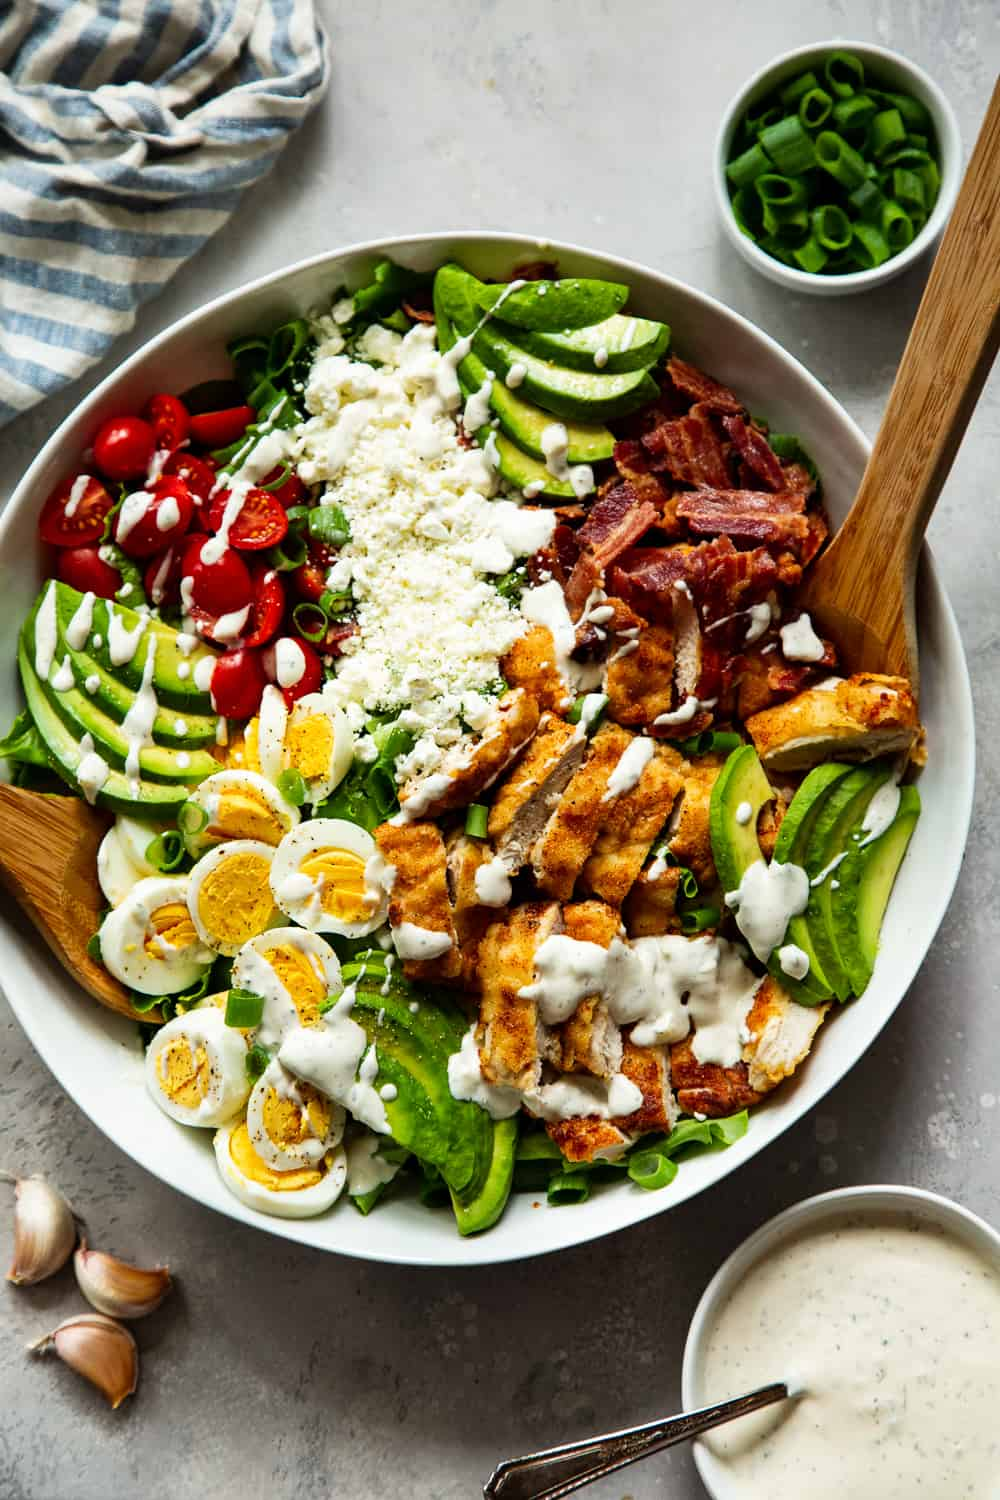 """This crispy chicken cobb salad is my favorite one yet with flavorful crispy """"breaded"""" chicken plus all the usual cobb salad goodies and a homemade garlic ranch dressing. It's paleo, with a Whole30 option, low in carbs and family approved! #paleo #whole30 #cleaneating #keto #lowcarb"""